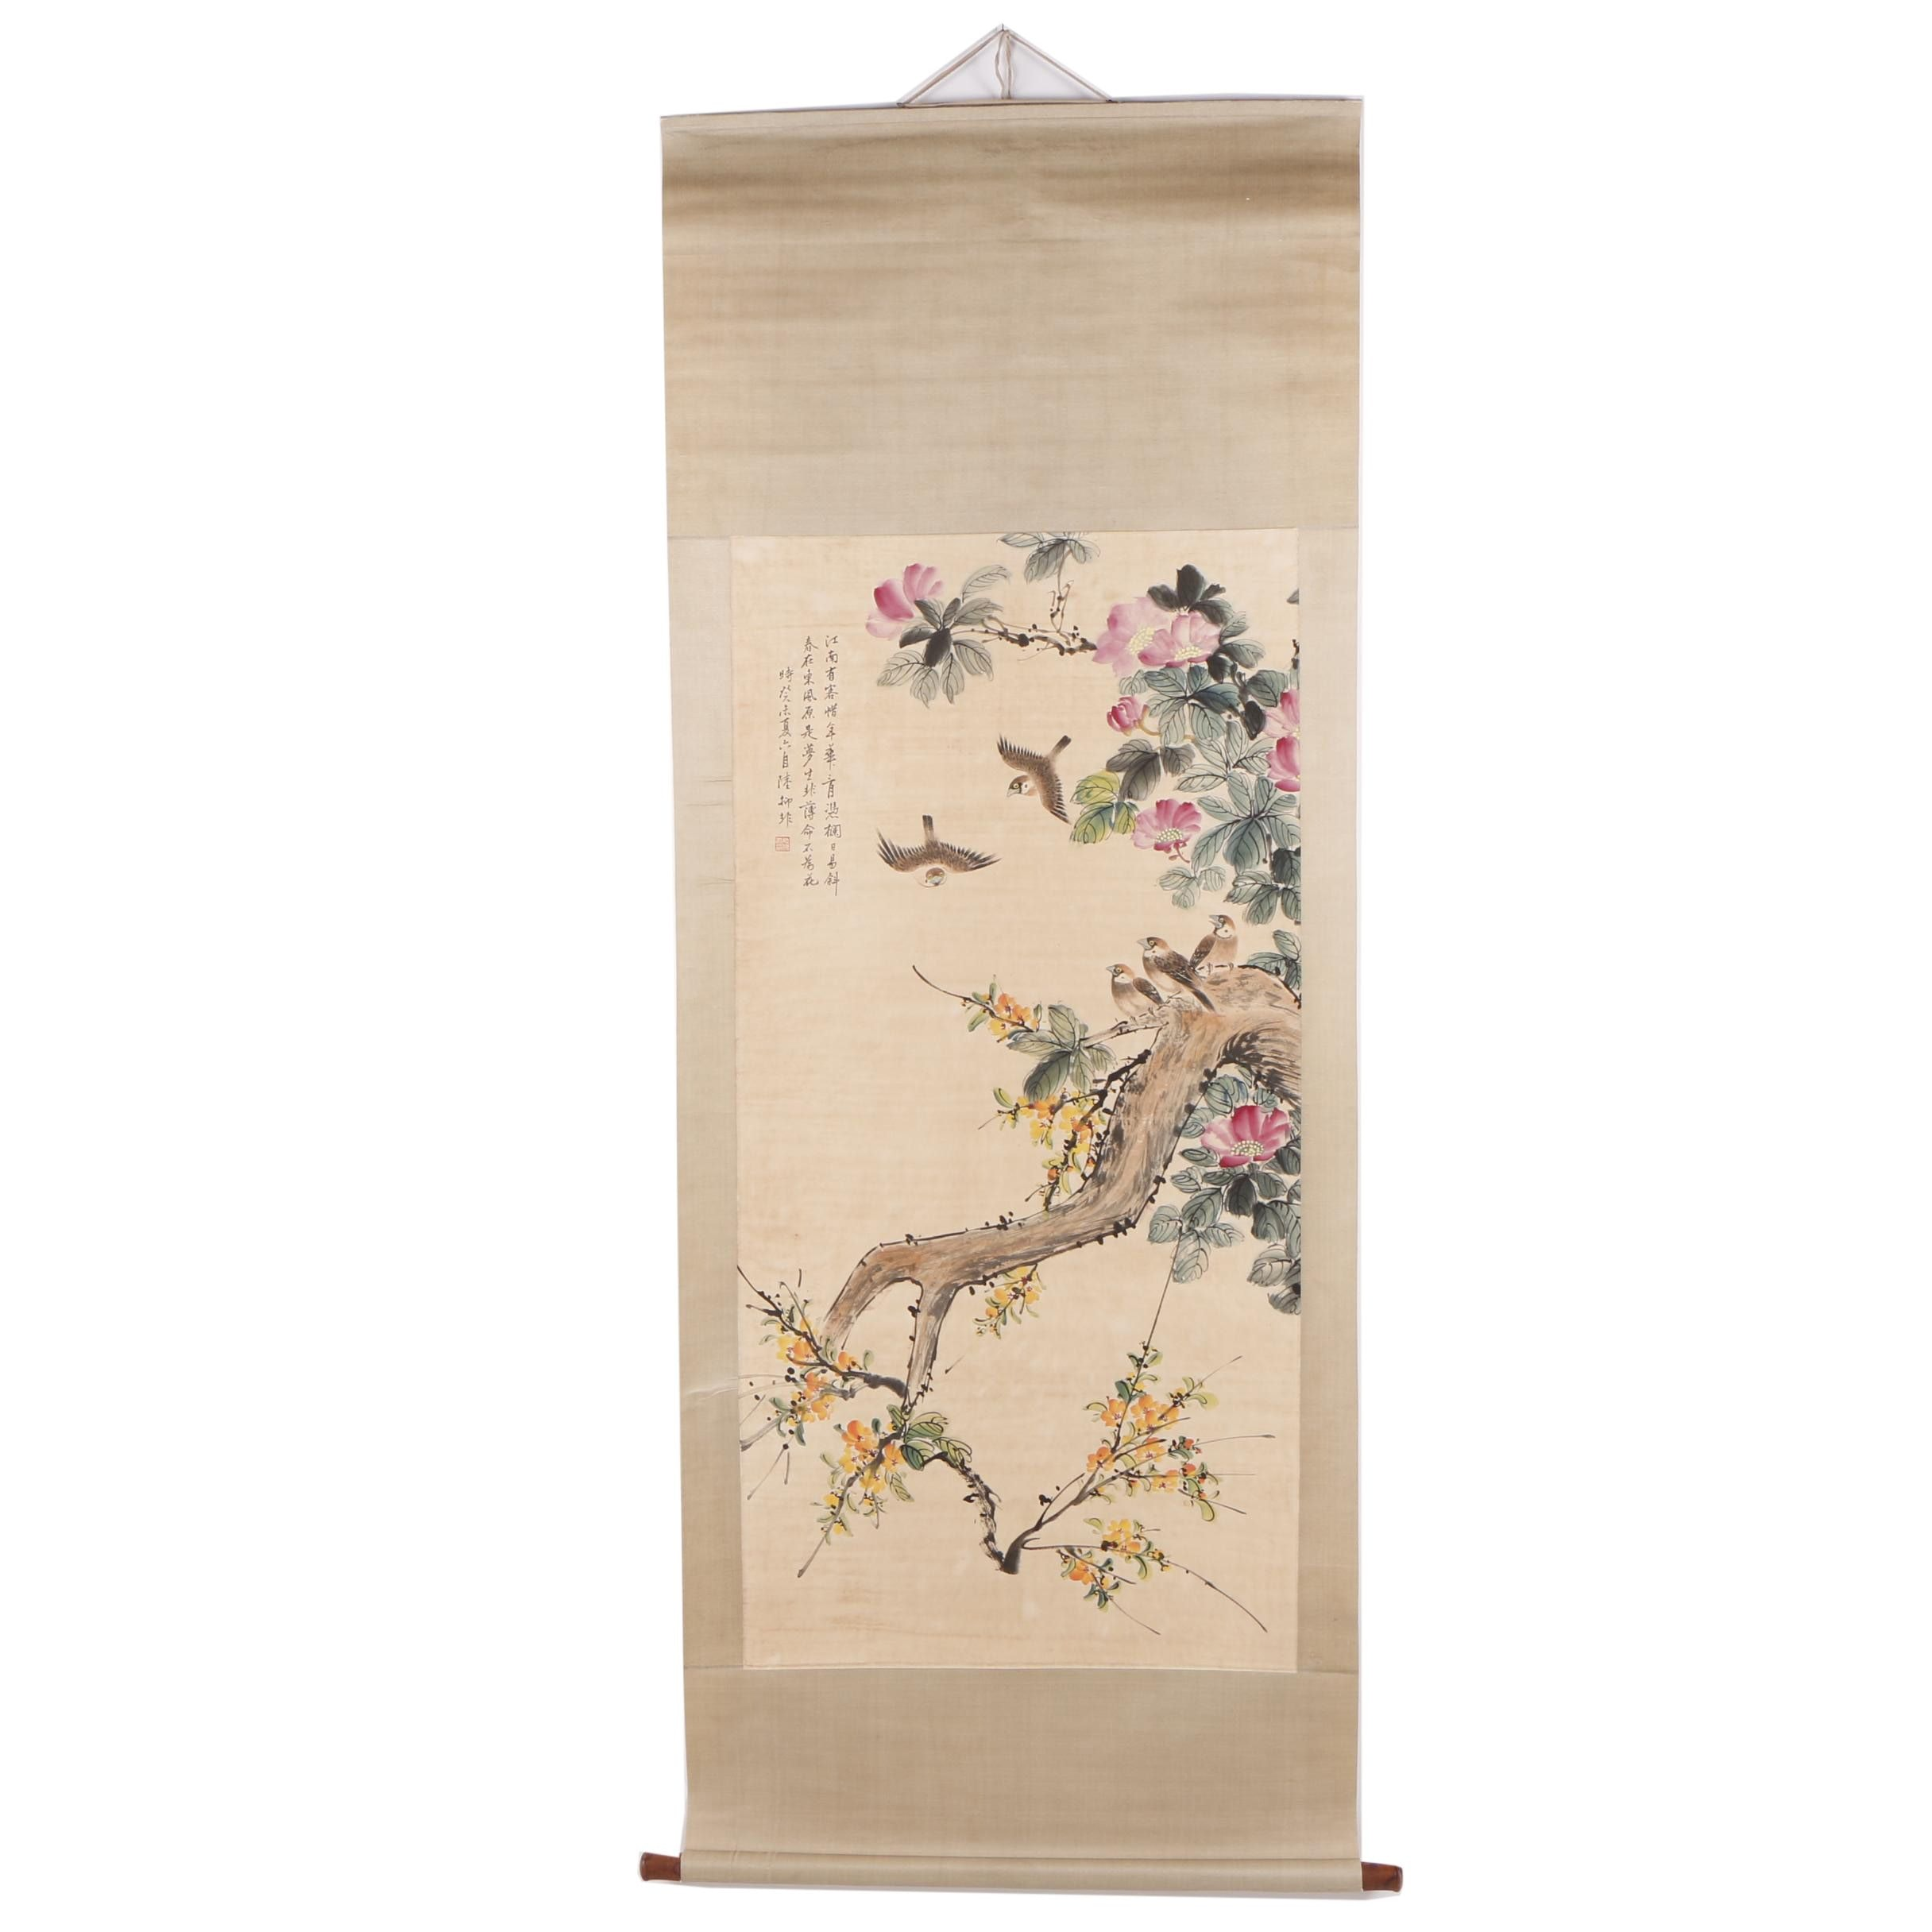 Chinese Gouache Hanging Scroll of Birds in Flowering Tree